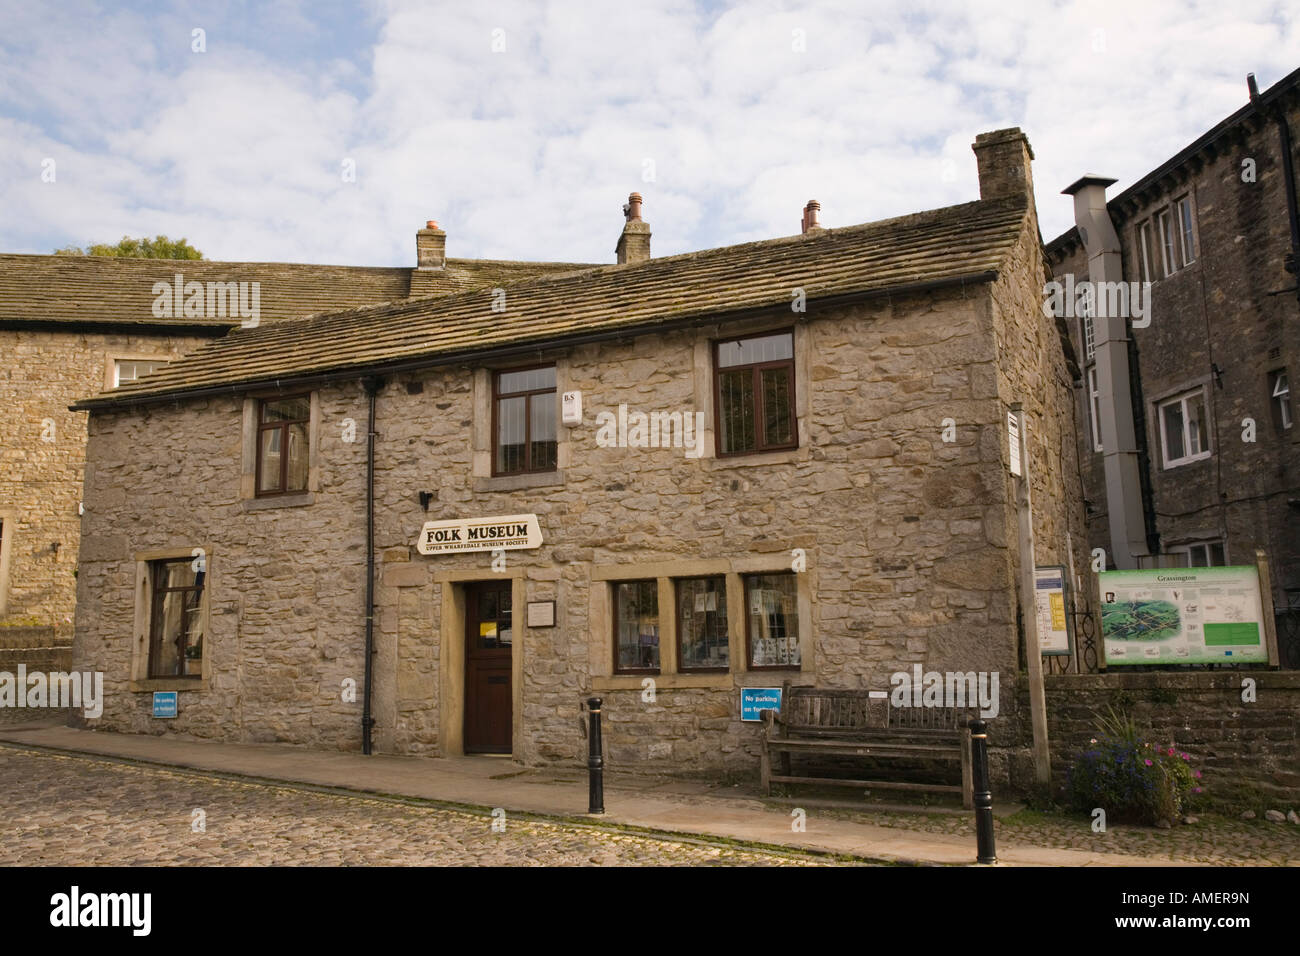 Folk museum in old stone building in village of Grassington North Yorkshire England UK Stock Photo